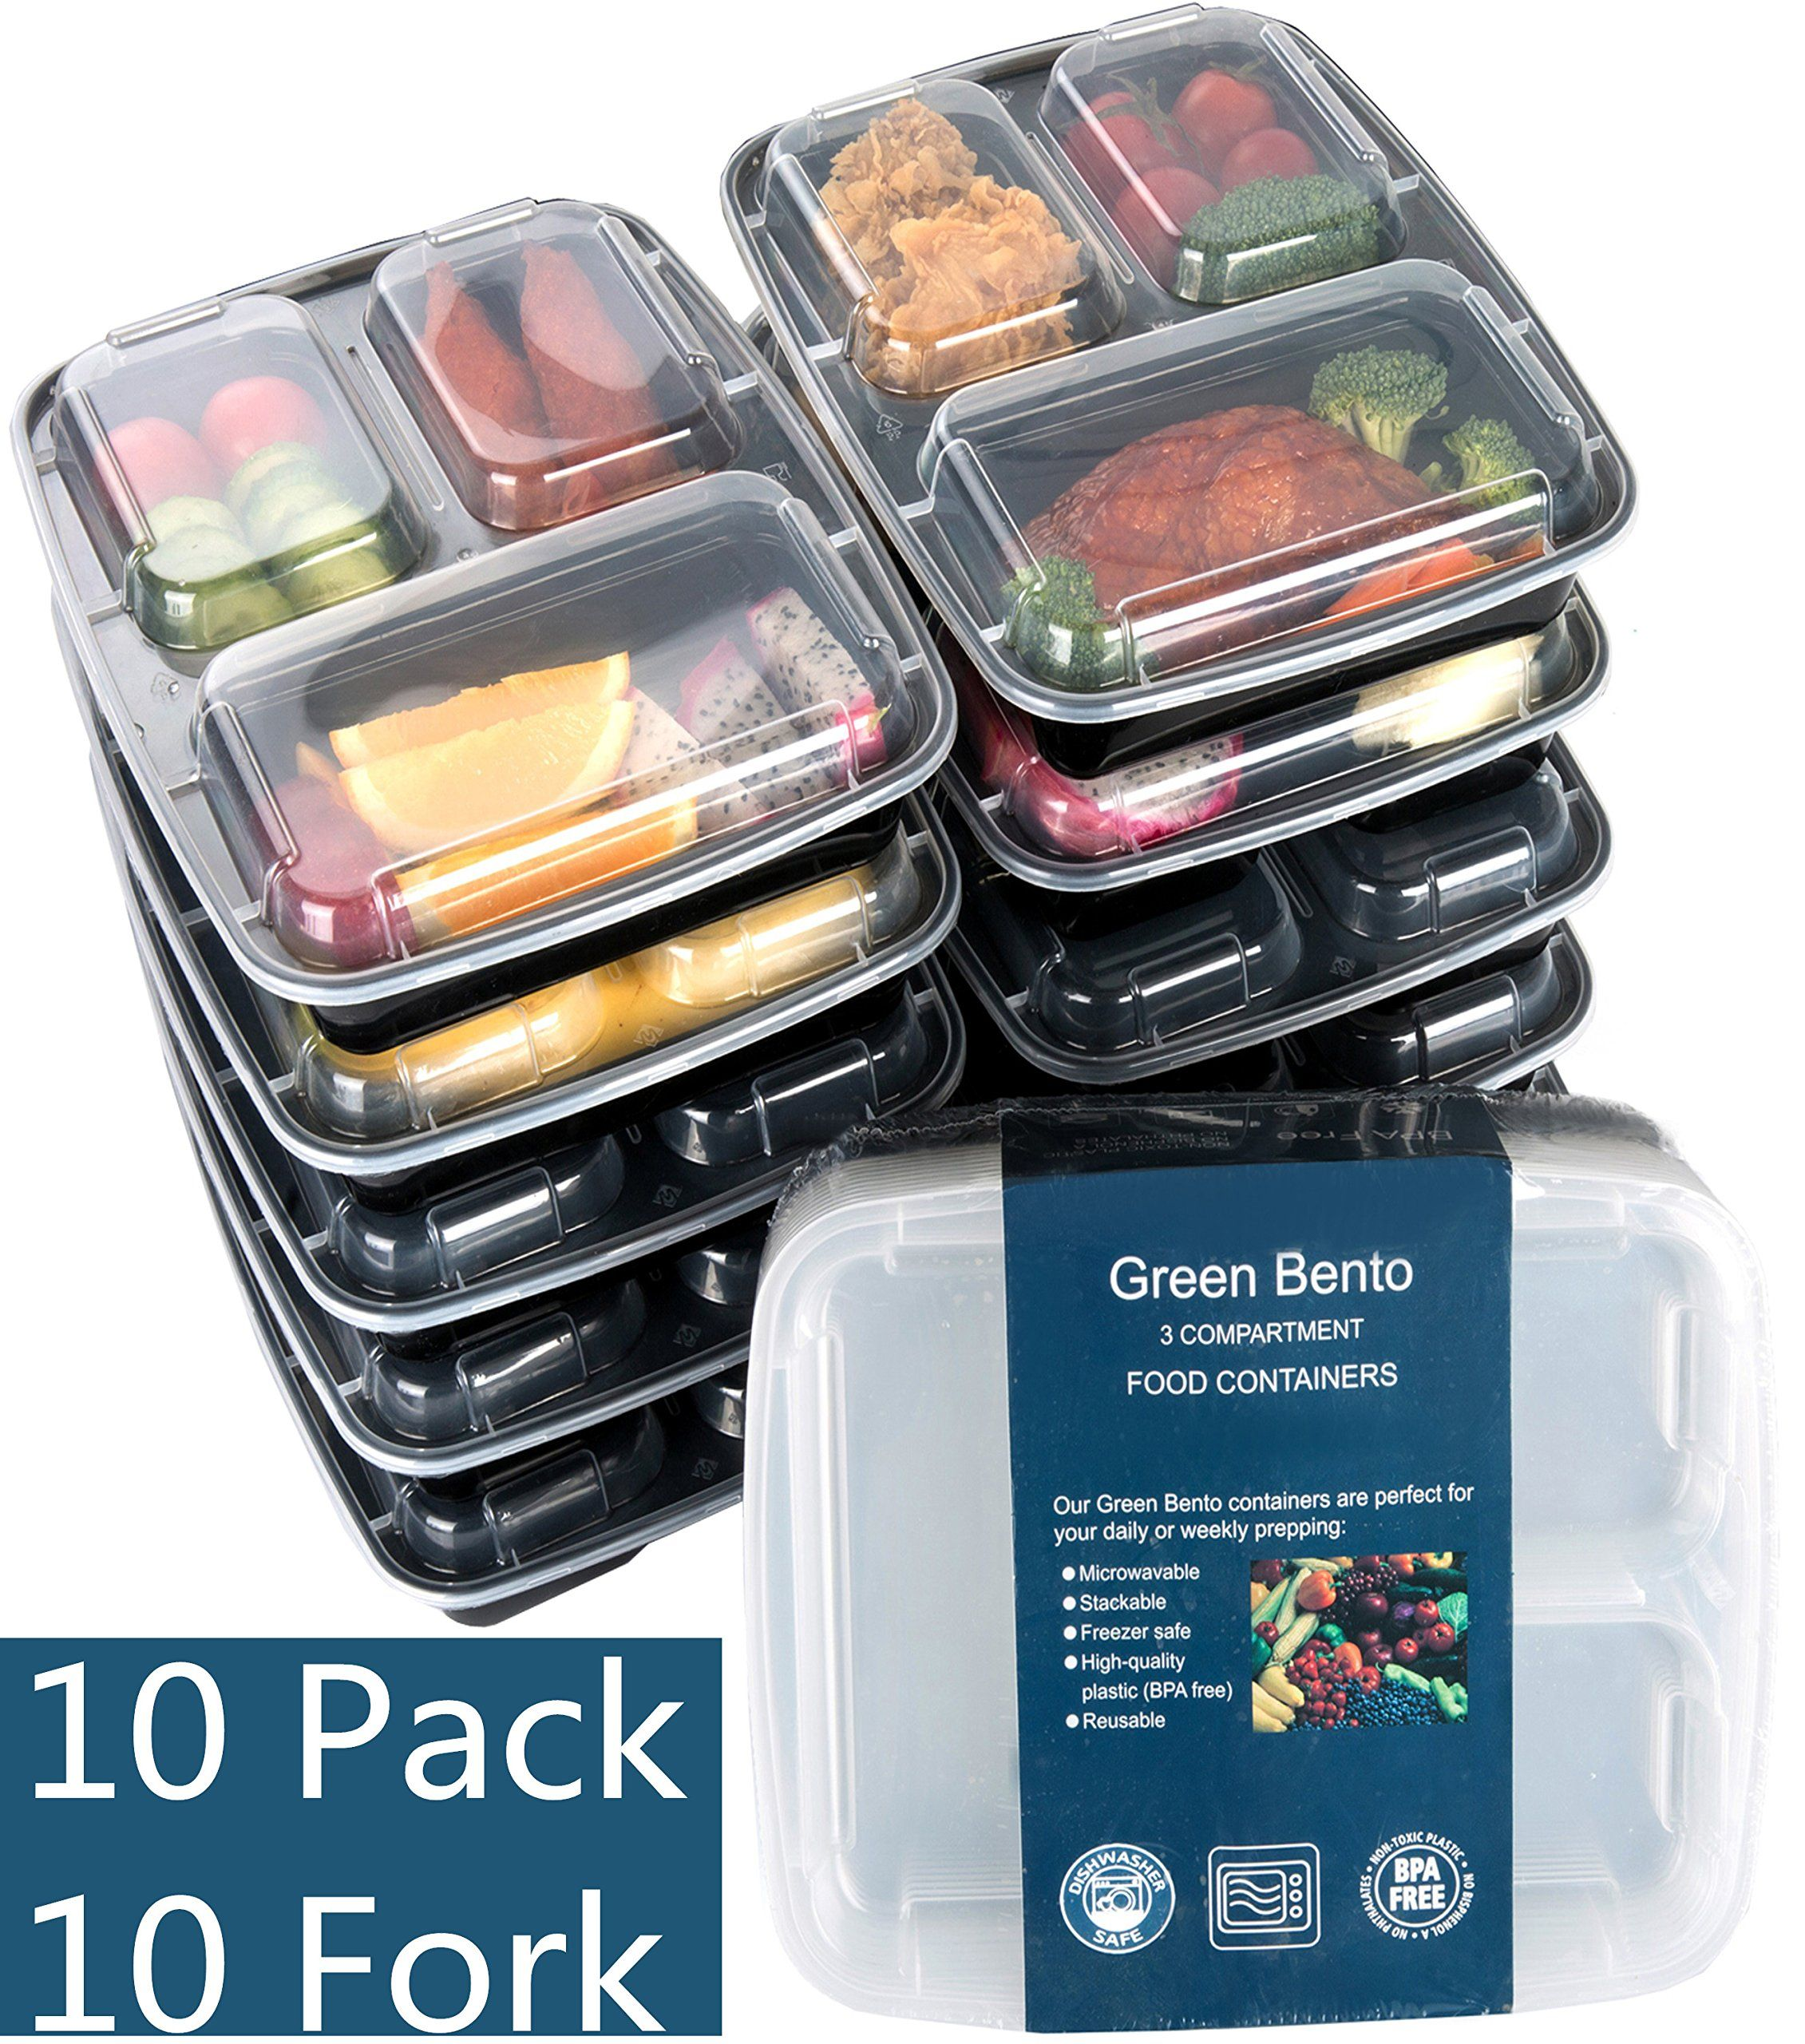 10 Pack-3 Compartment Food Container with Lids for Portion Control Square Divided Plate  sc 1 st  Pinterest & 10 Pack-3 Compartment Food Container with Lids for Portion Control ...